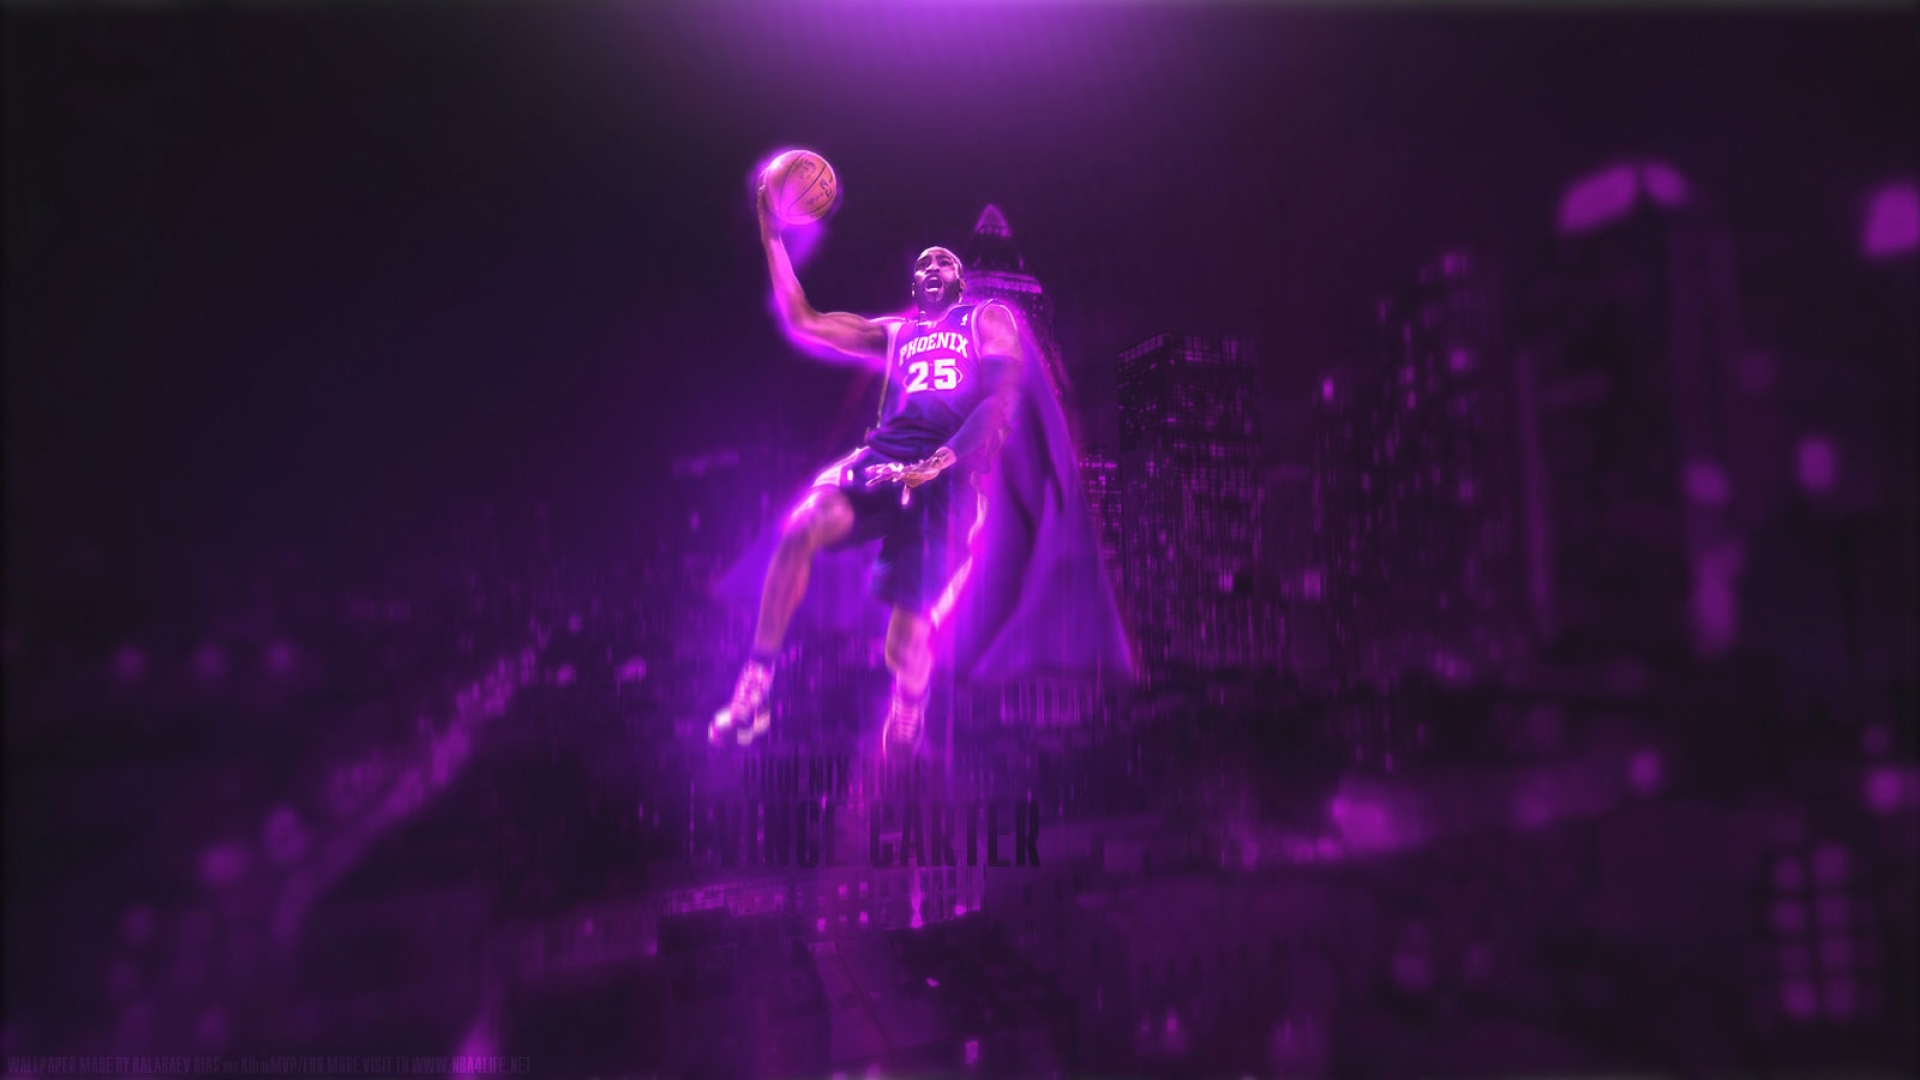 Vince Carter Suns wallpaper